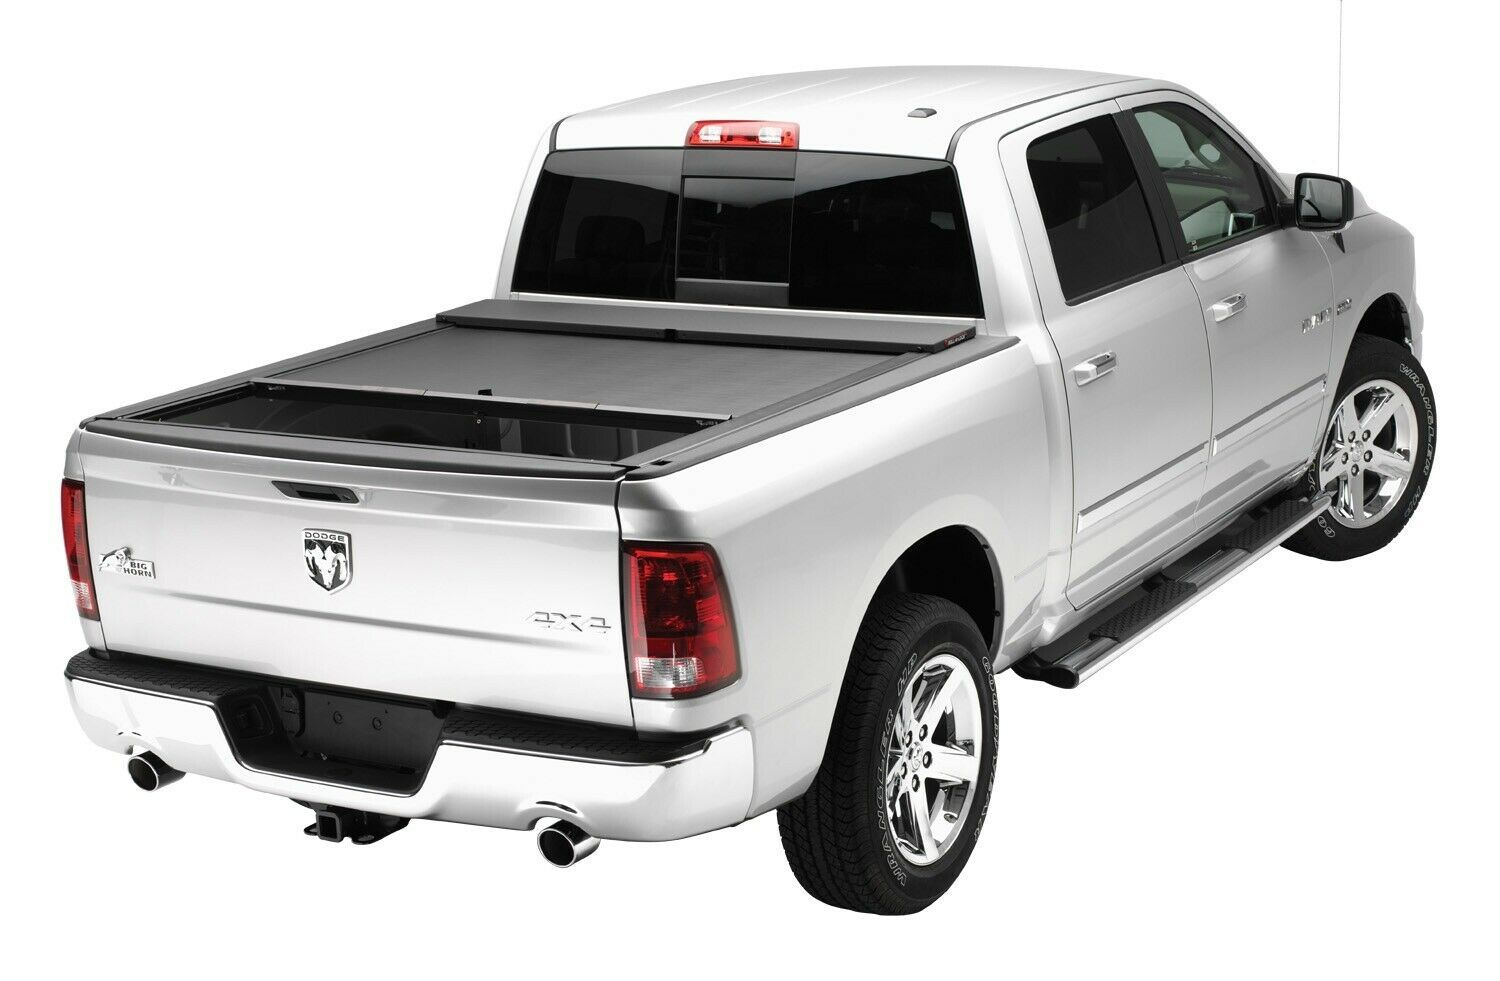 Roll N Lock Bed Cover Tonneau cover, Truck bed covers